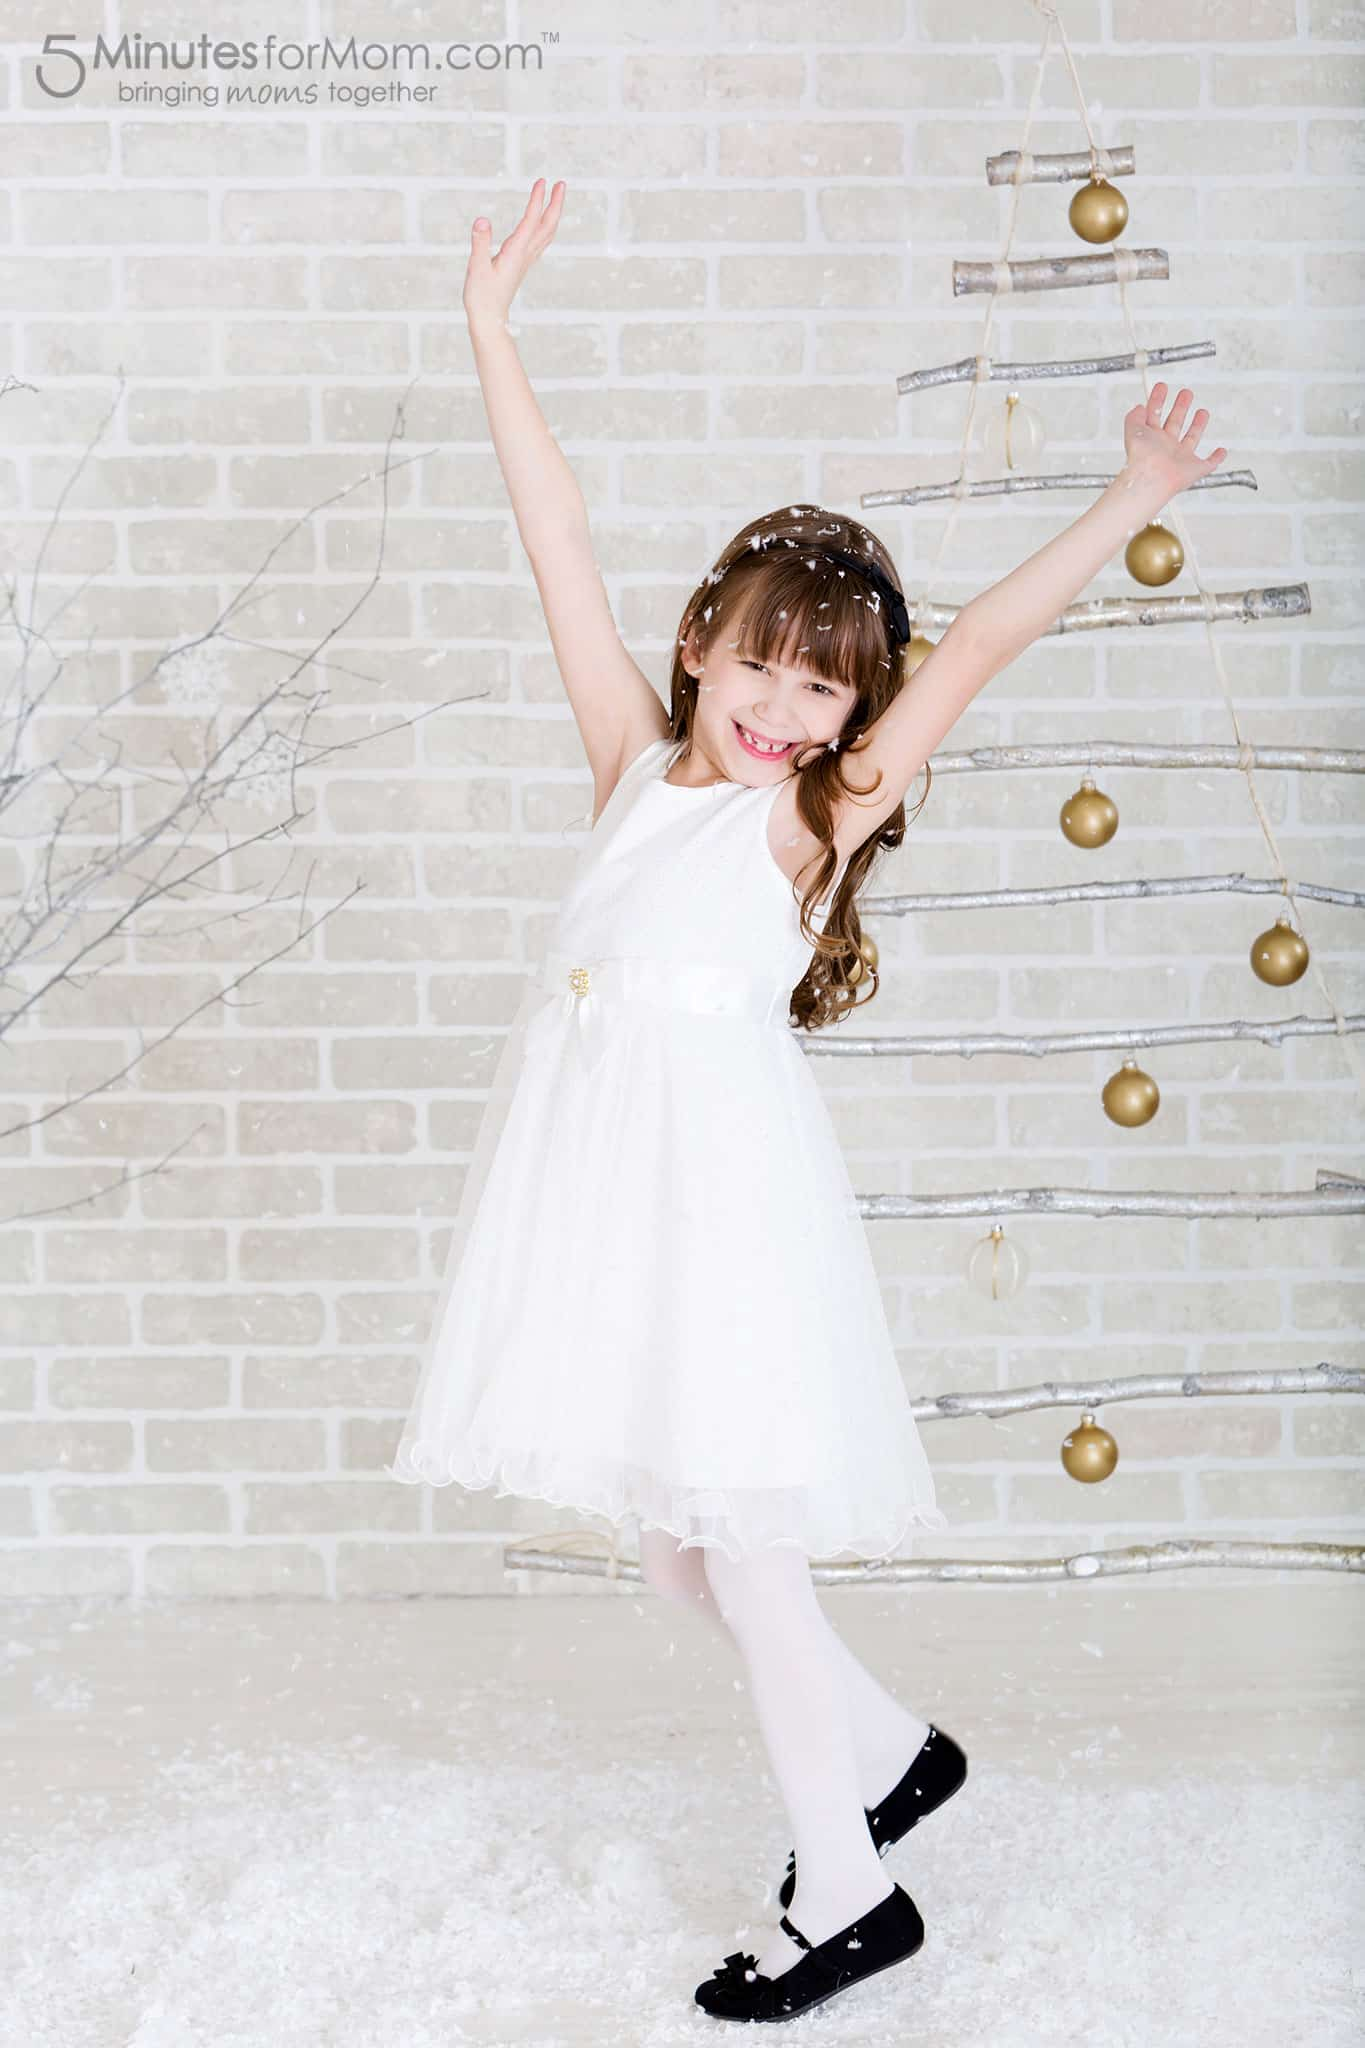 sophia-dancing-christmas-branch-tree